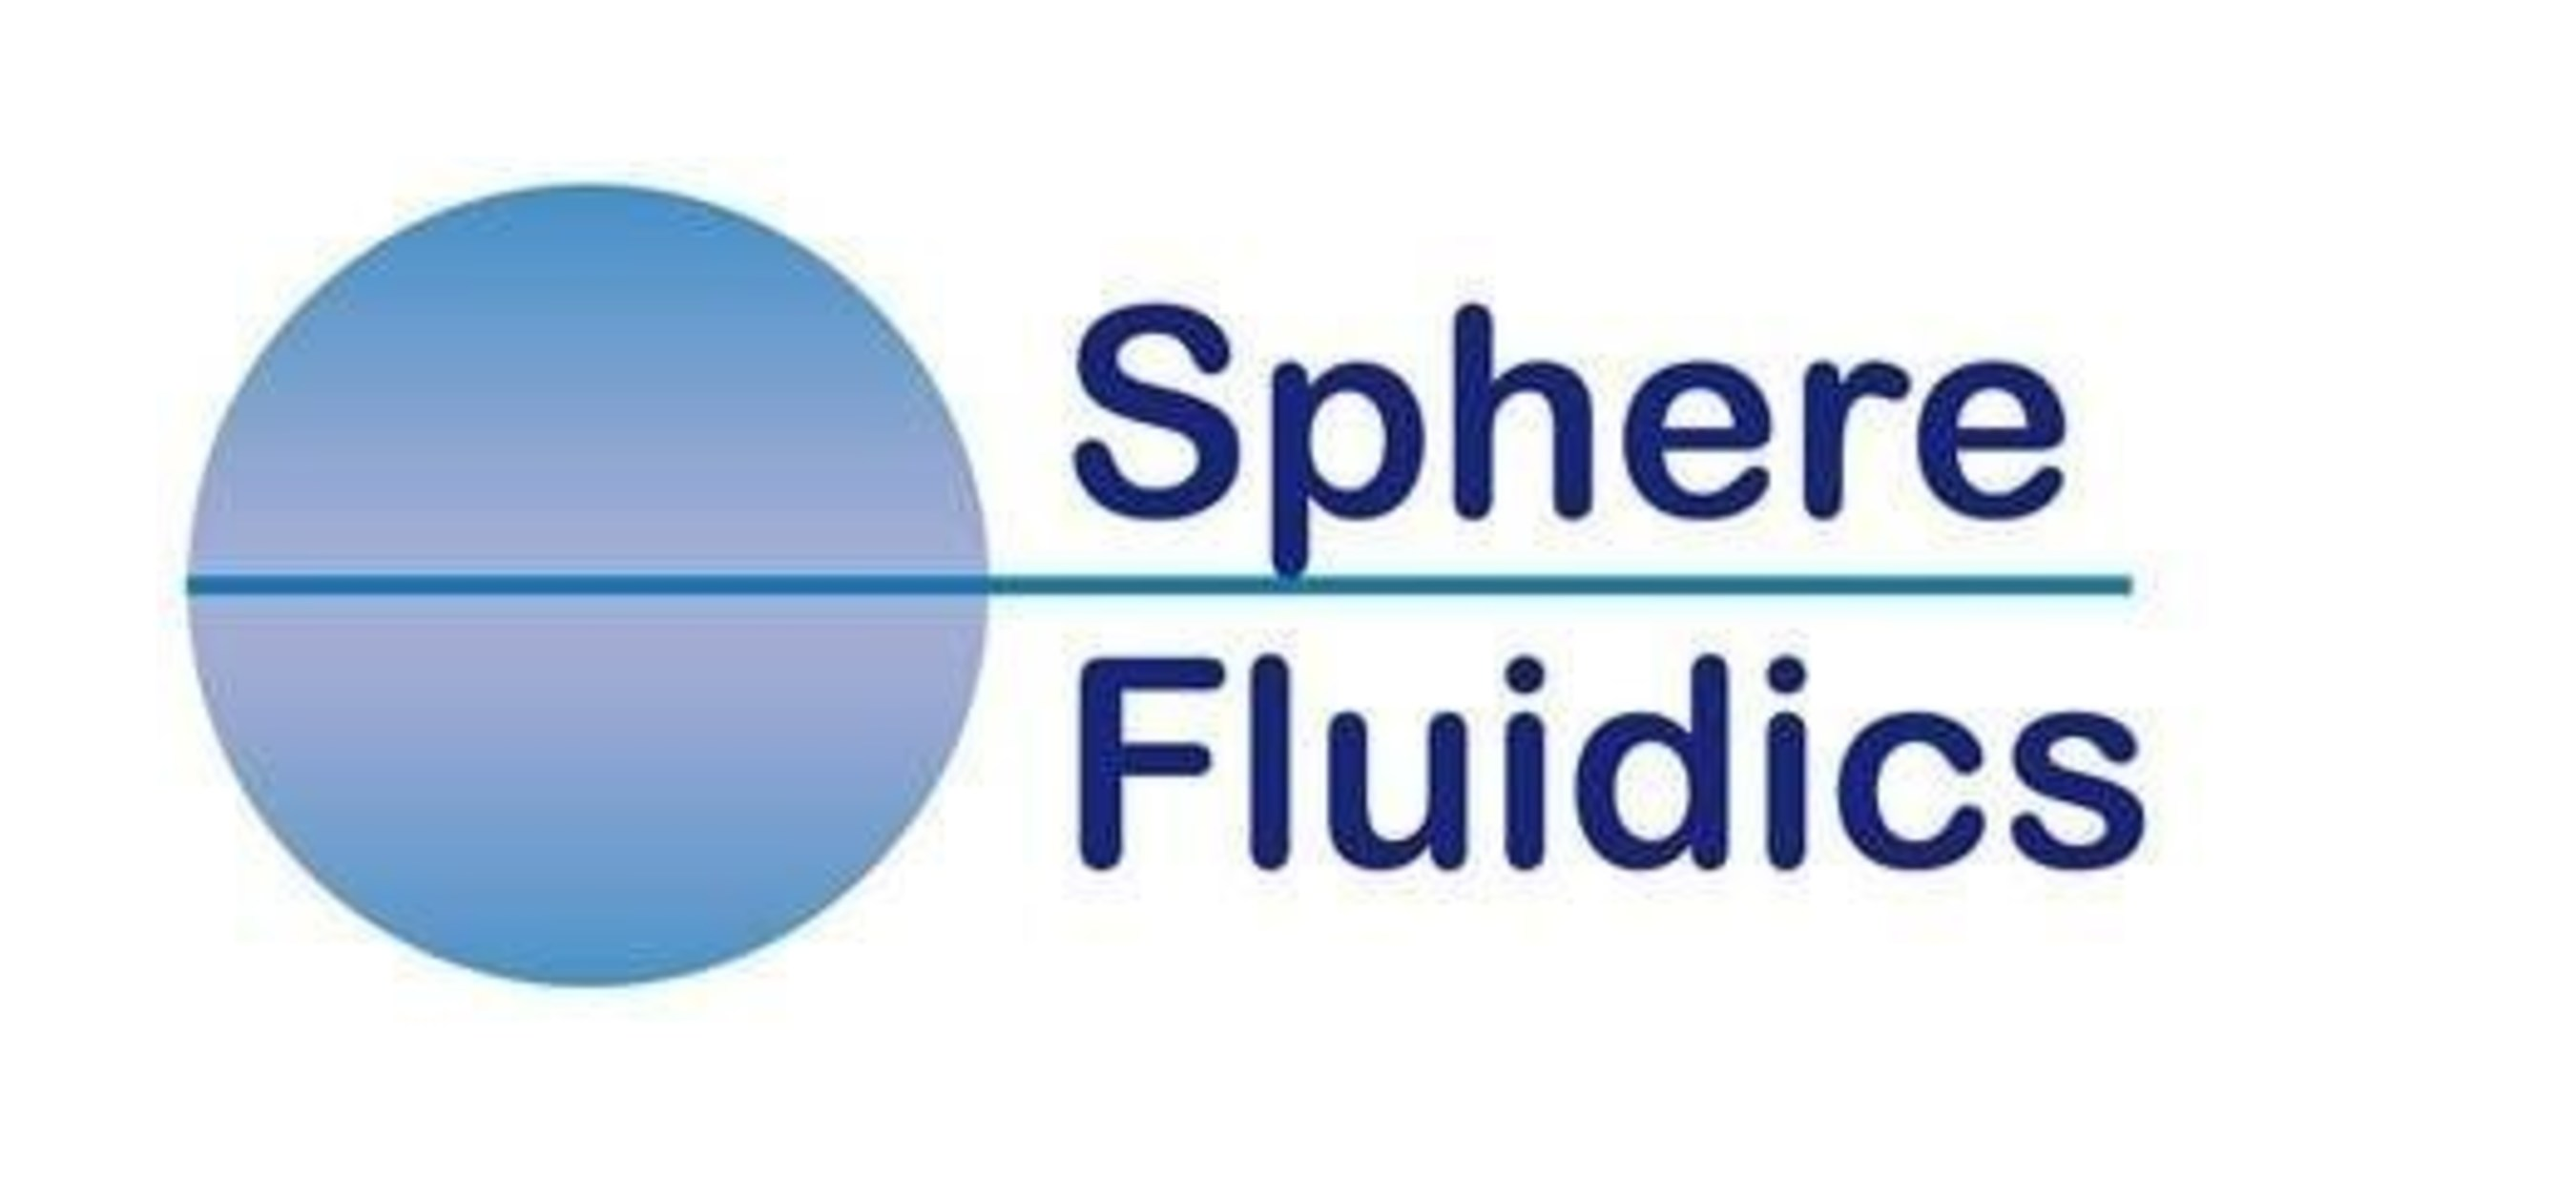 Sphere Fluidics raises $7 M for launch of Cyto-Mine® single cell analysis system